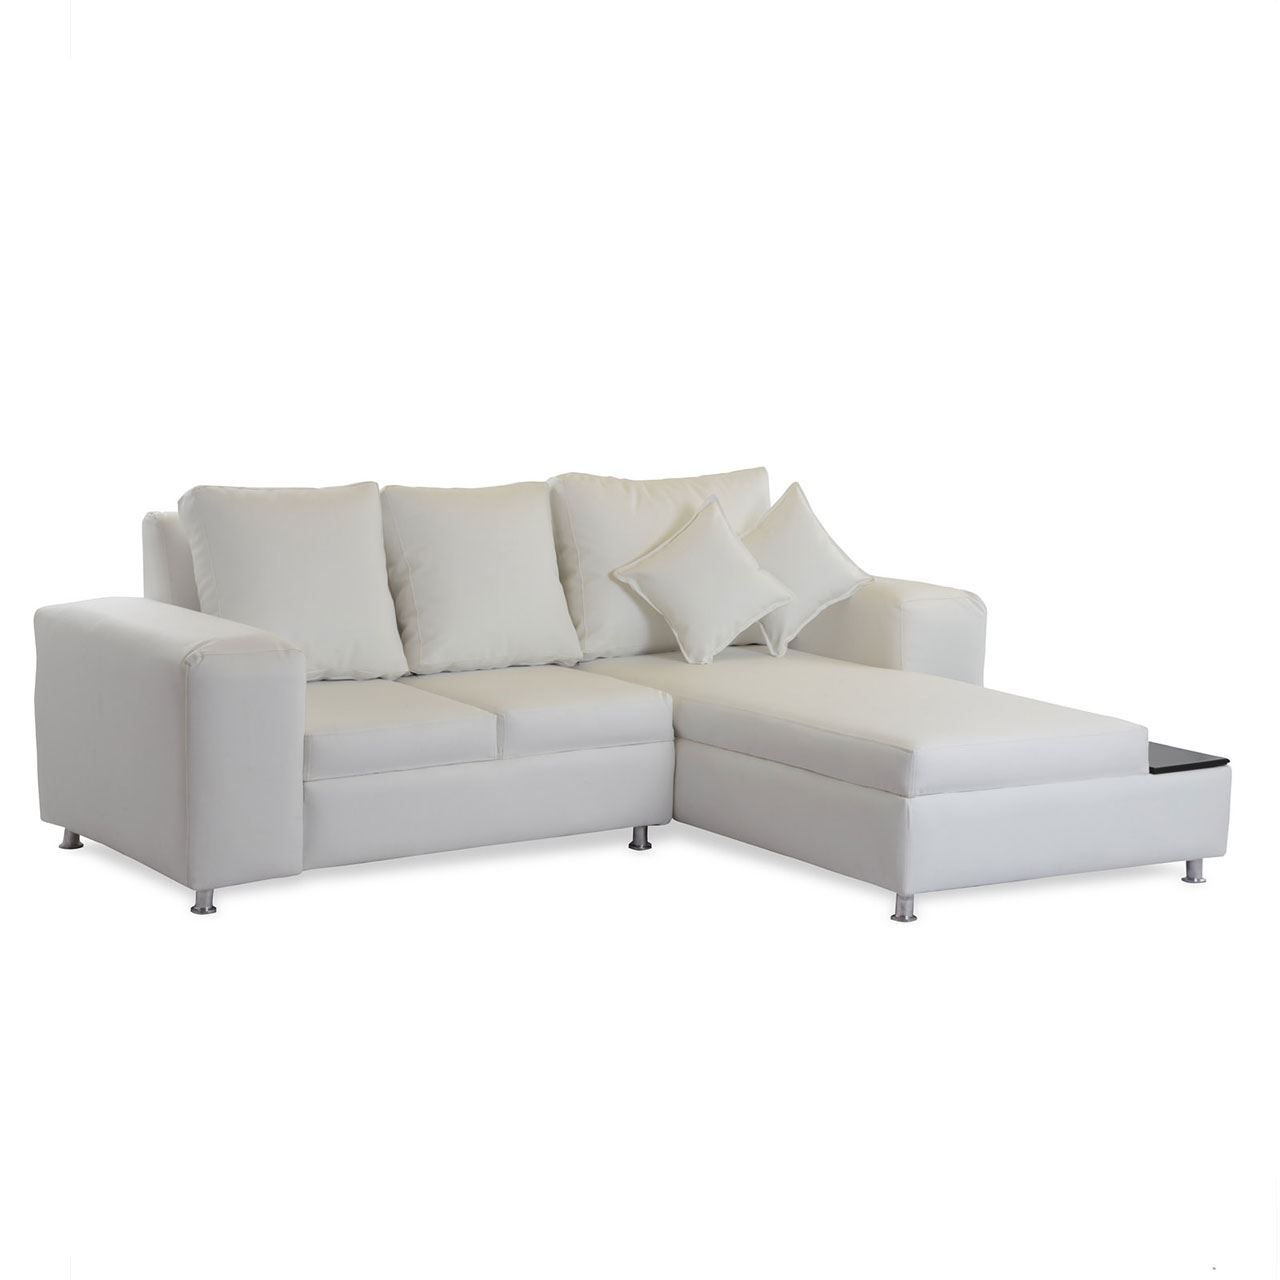 L Shaped Sofa For Small Living Room: Sofas En L 7 Modern L Shaped Sofa Designs For Your Living